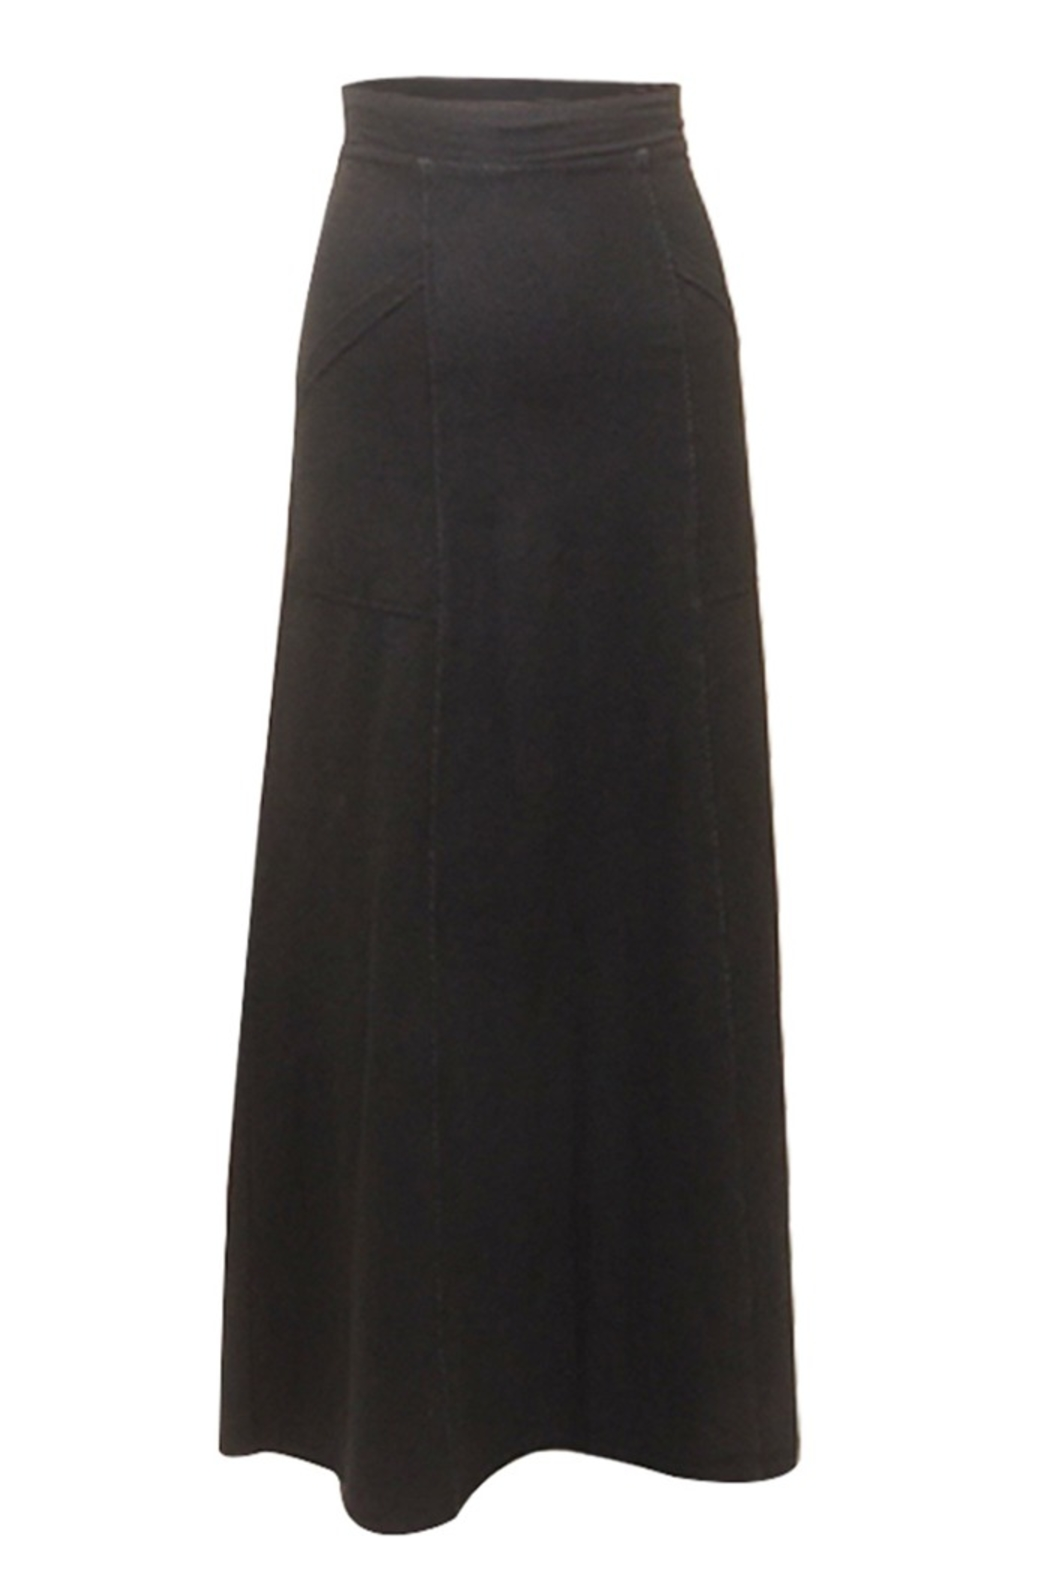 Hard Tail Hardtail Angle Pocket Long Skirt RAC-18 - Front Cropped Image